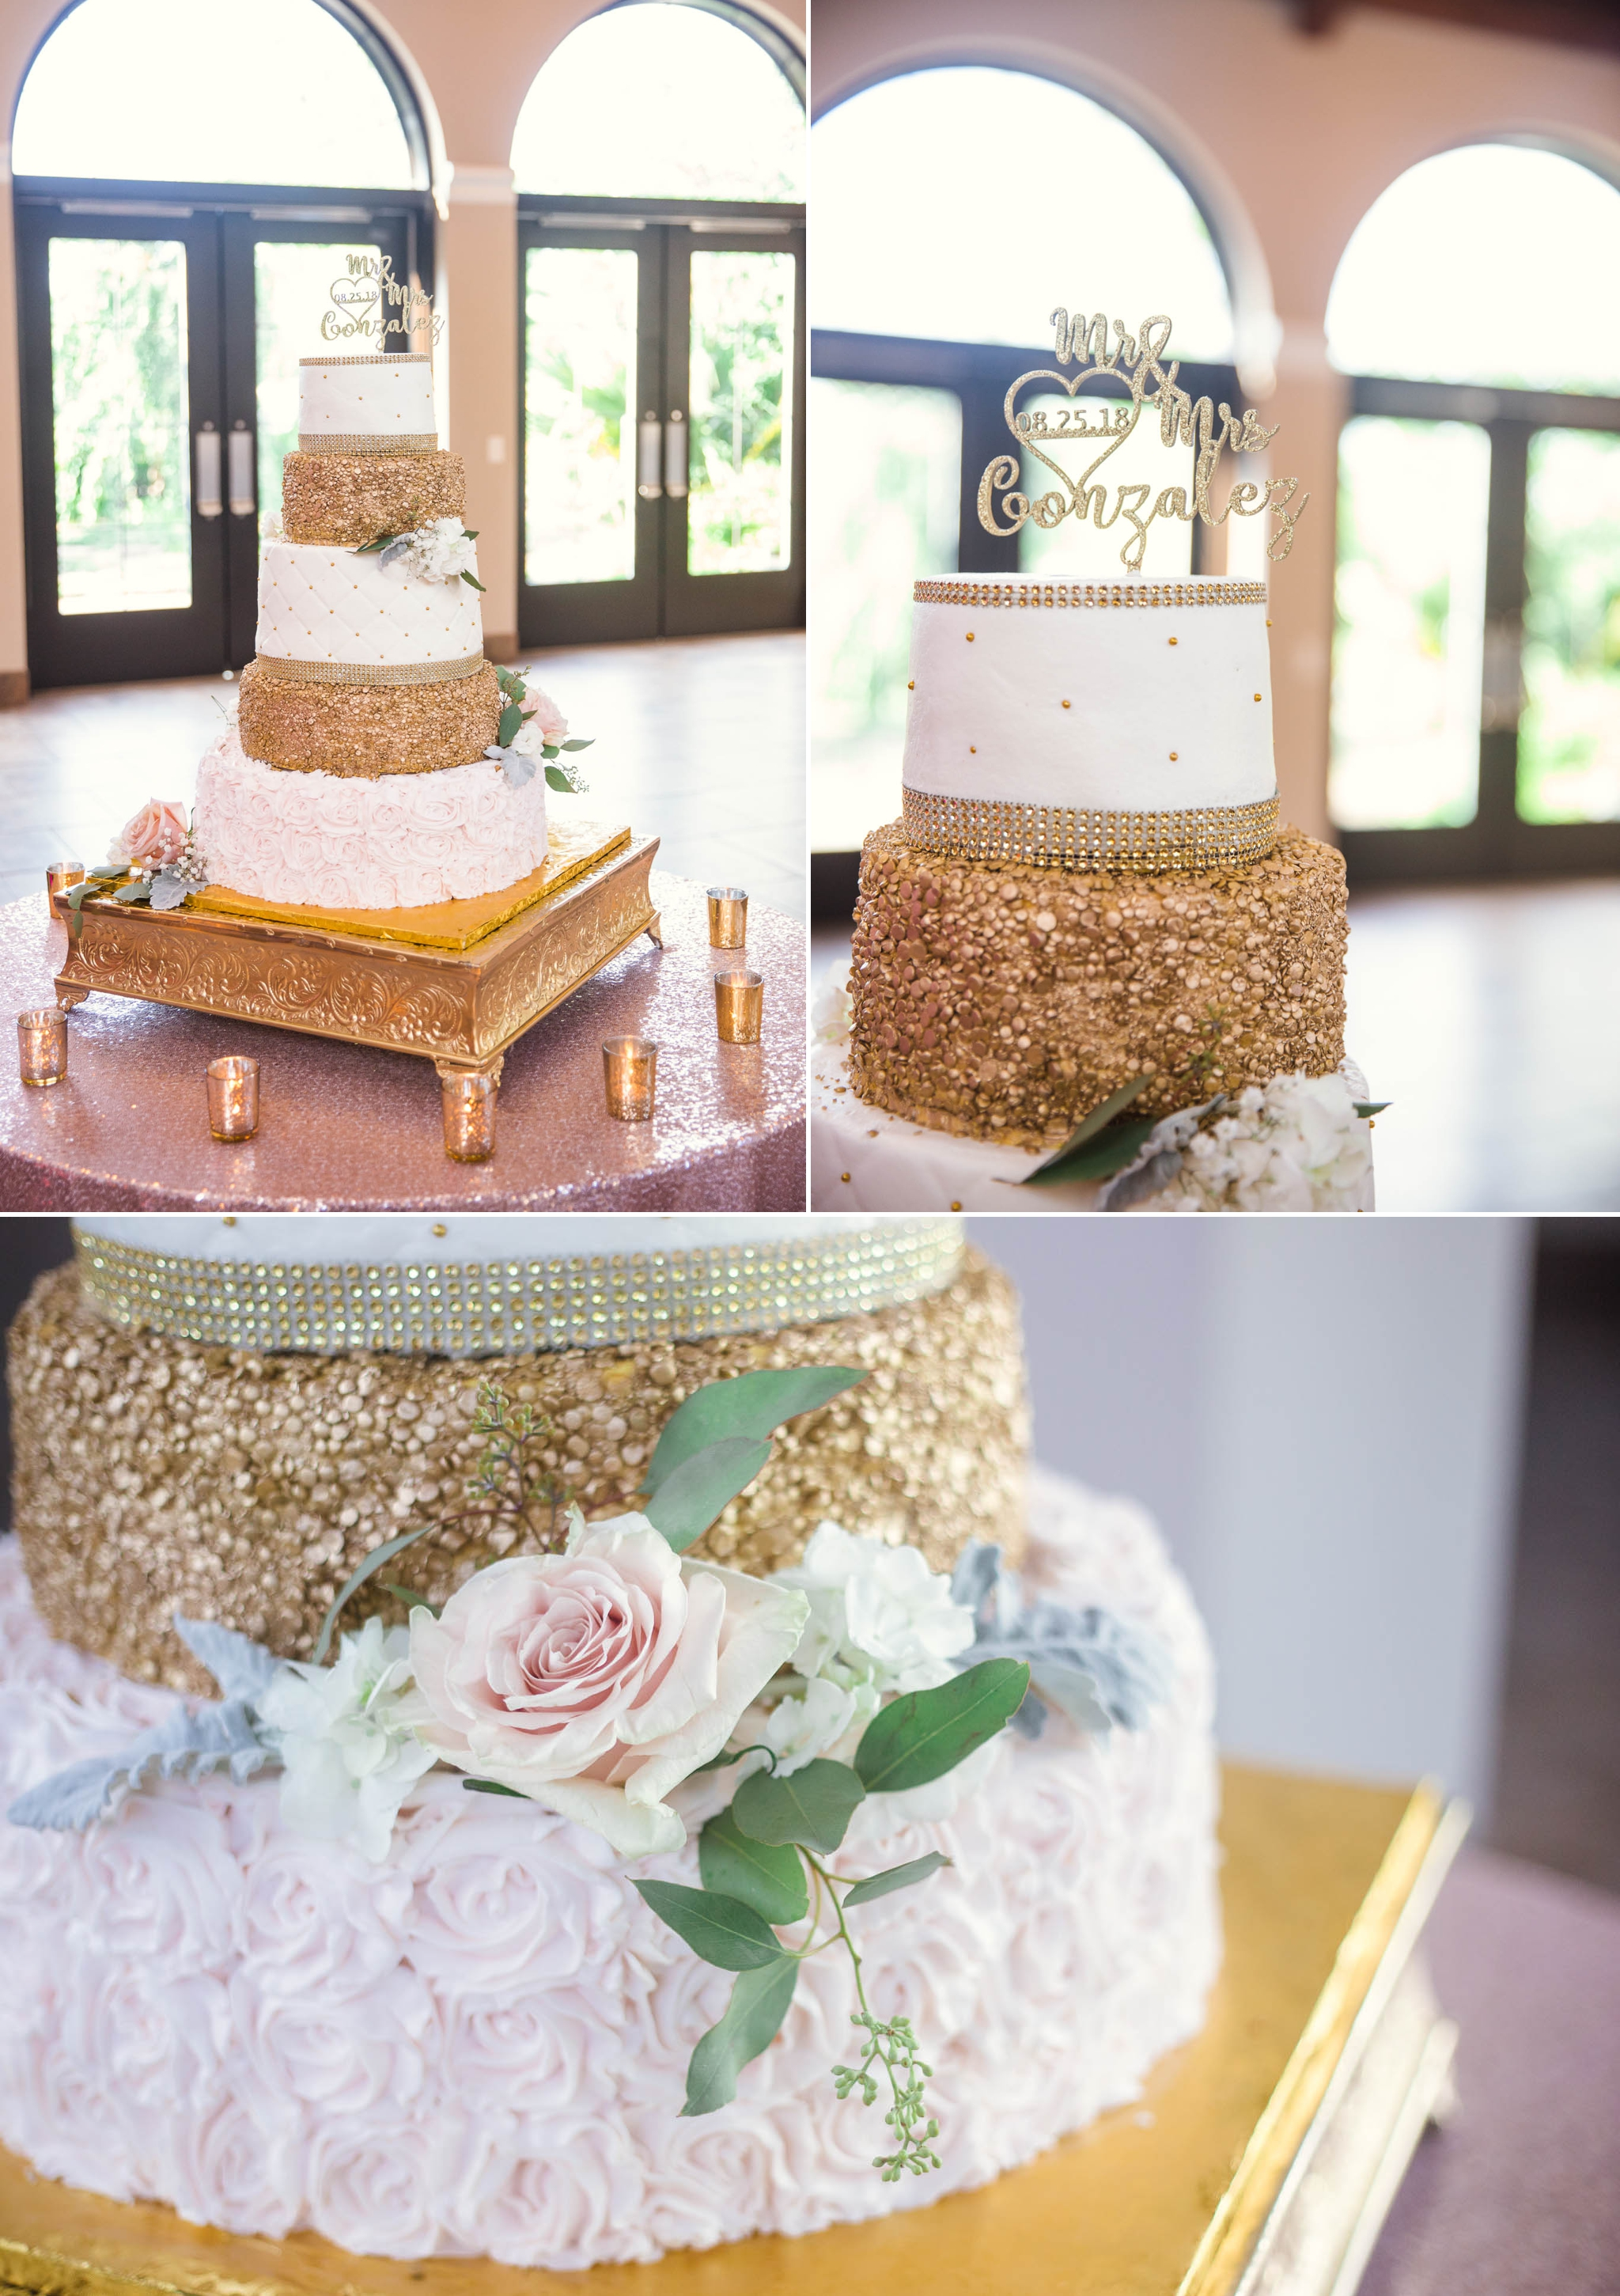 The Wedding Cake - Yansi + Eddie - Wedding at Cape Fear Botanical Garden - Fayetteville North Carolina Photographer